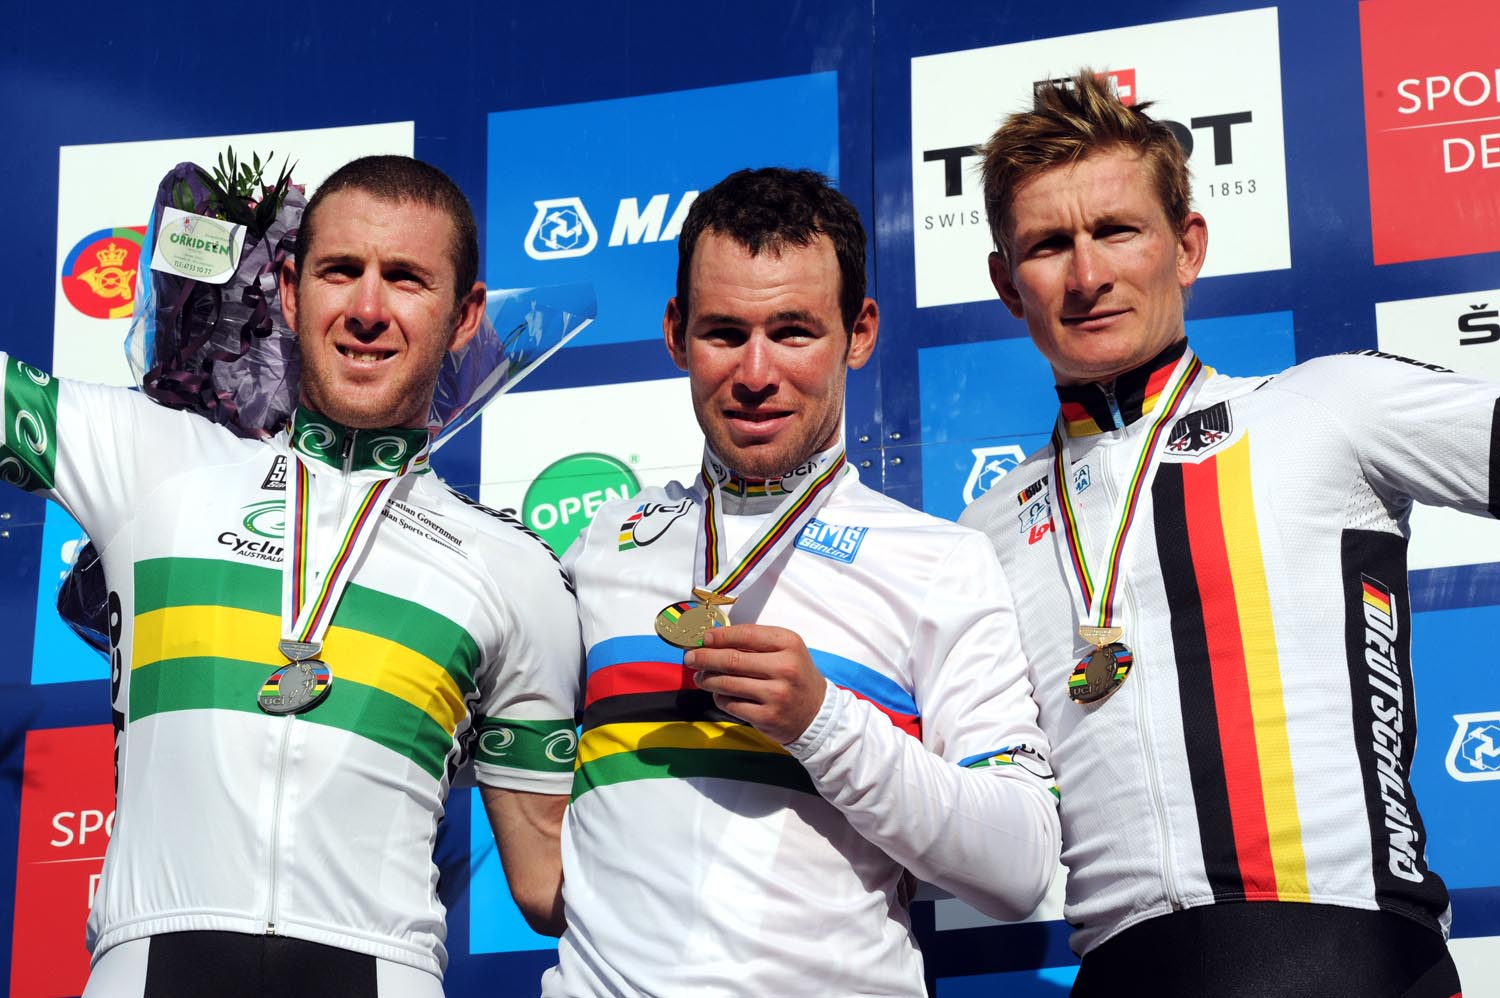 World Championships 2017 venue to be announced today - Cycling Weekly 414e650ea